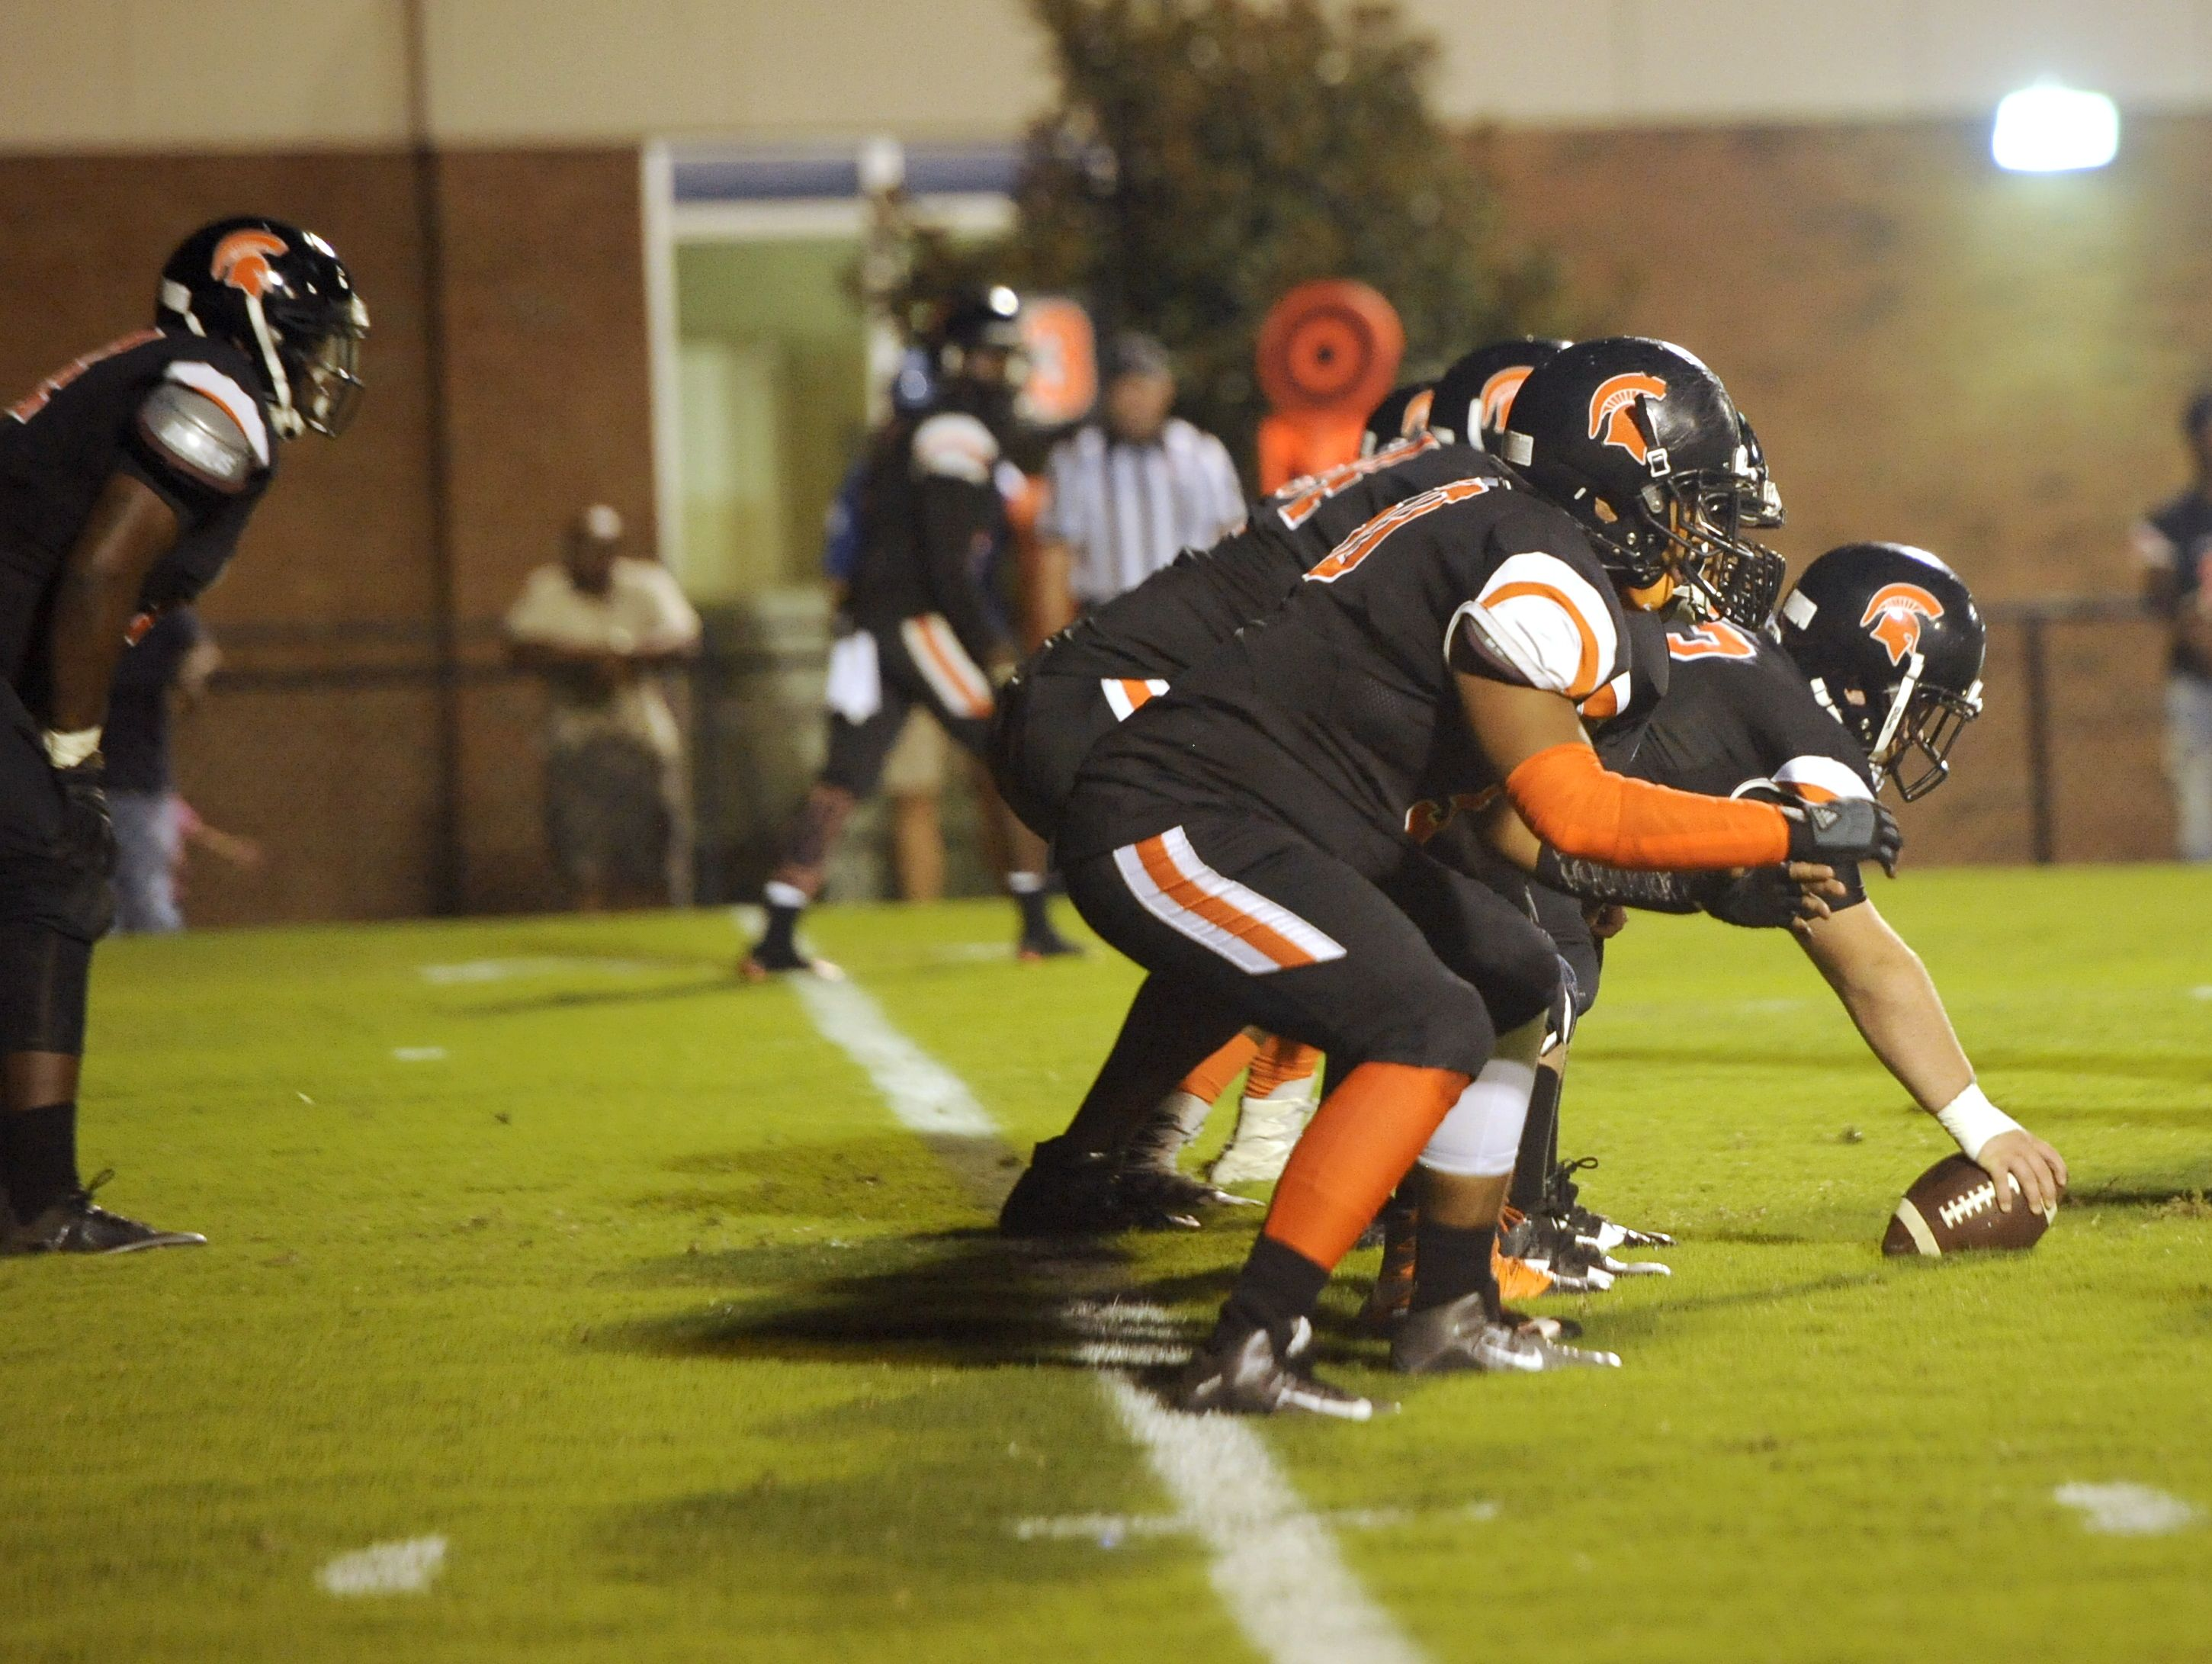 Stratford remained unbeaten with Friday night's 15-14, come-from-behind victory at Goodpasture.